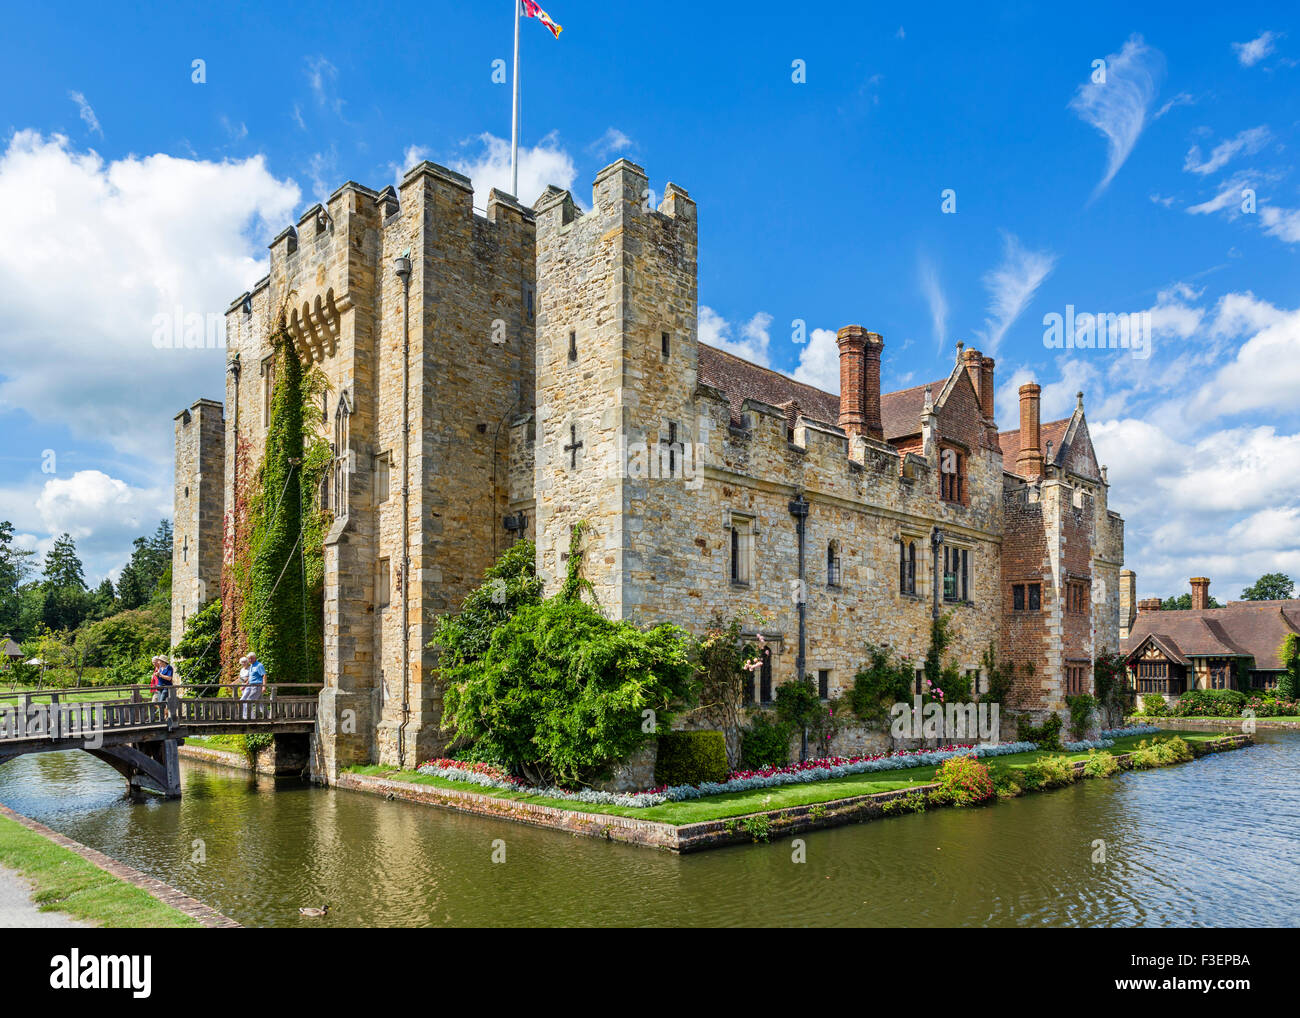 Hever Castle, family home of Anne Boleyn, Hever, Kent, England, UK - Stock Image